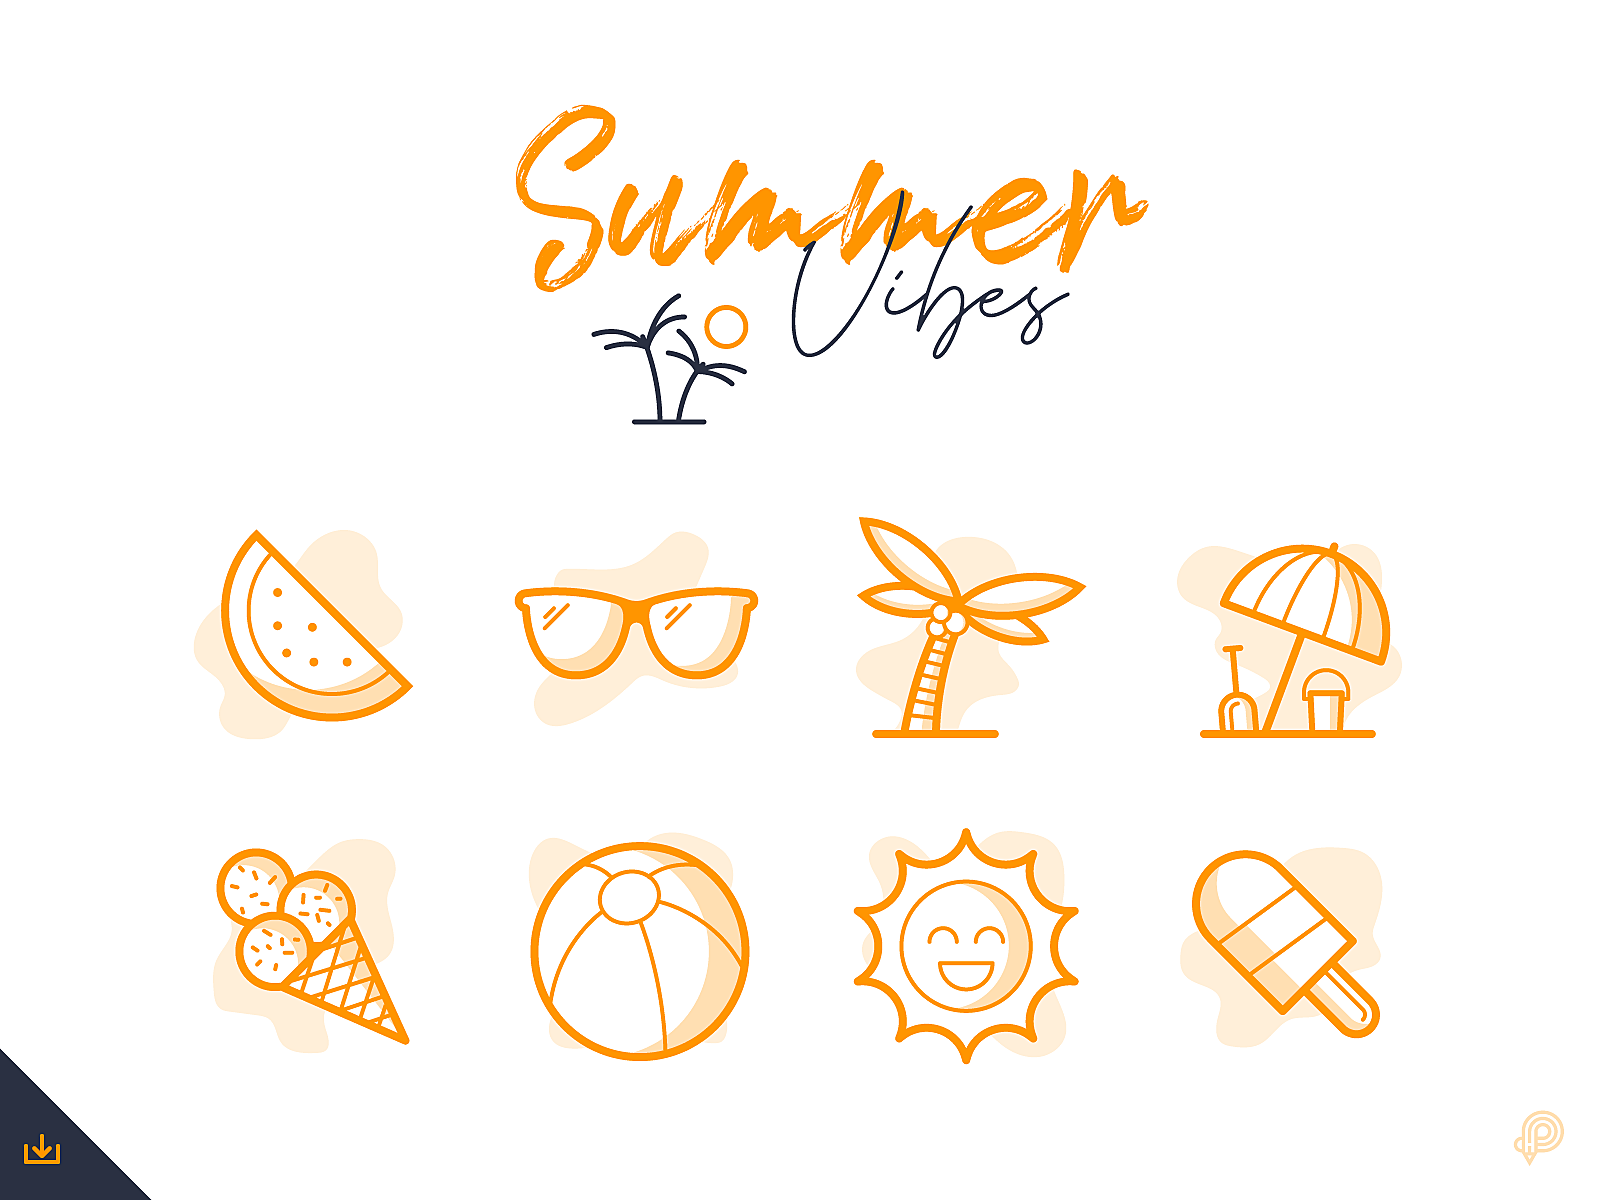 FREE Summer vector icon by Petr Had on Dribbble